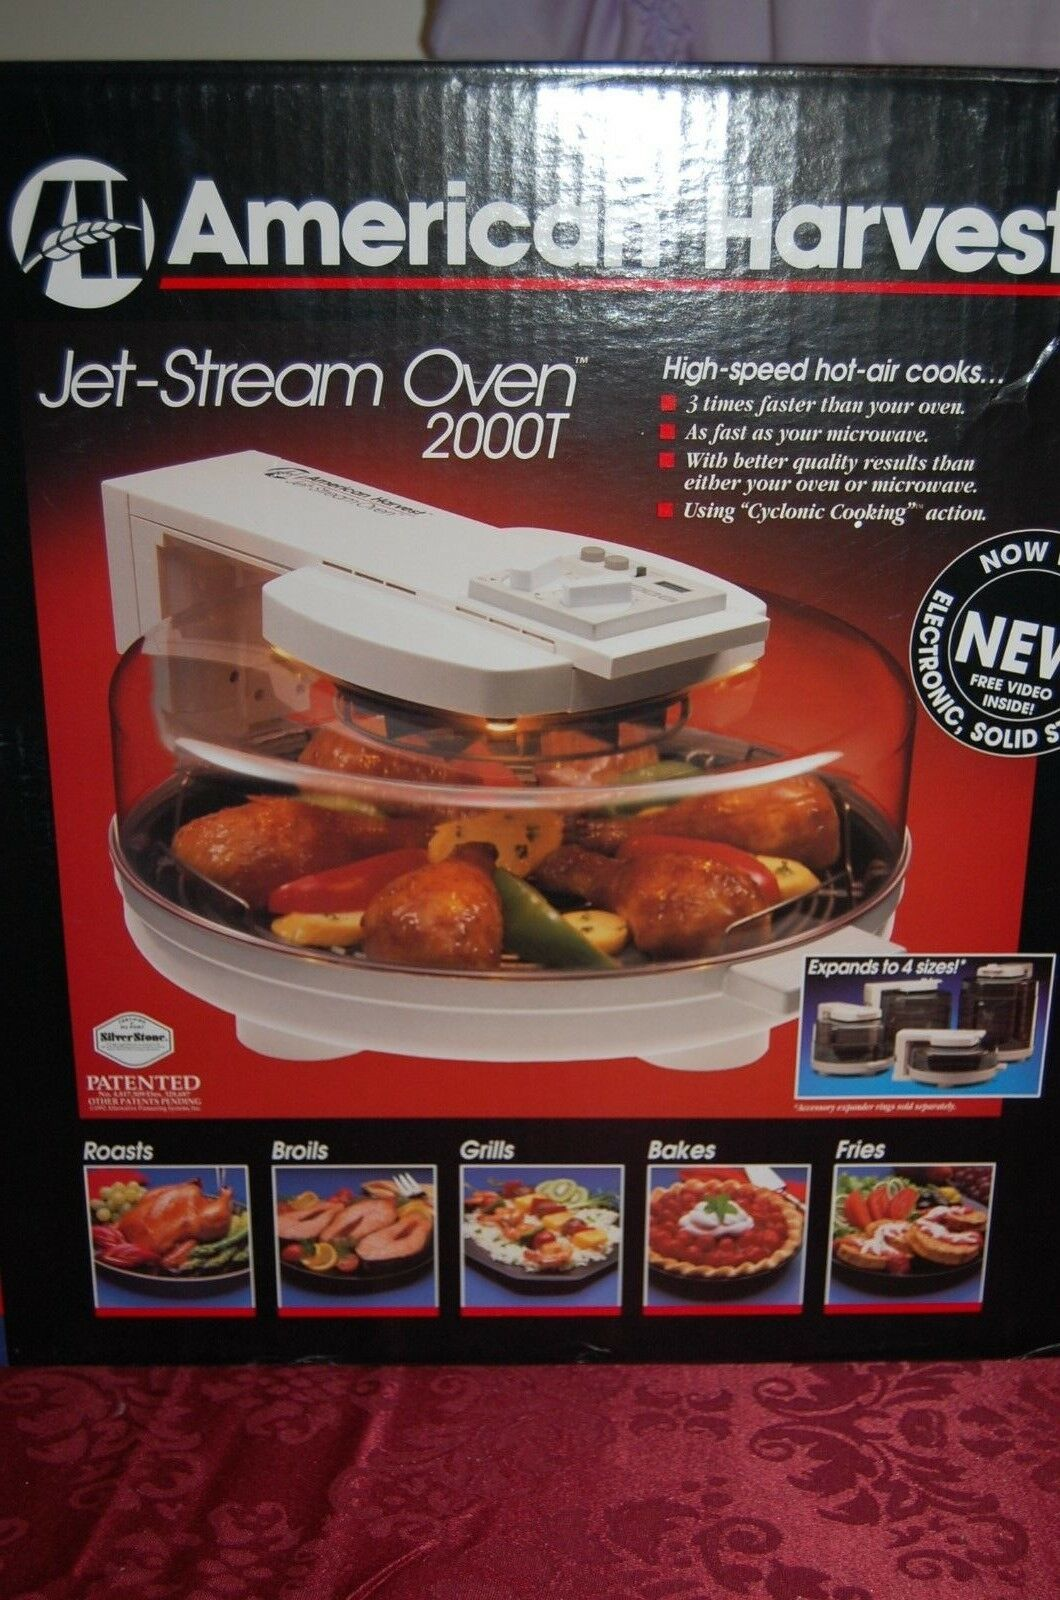 American Harvest JET-STREAM OVEN Model 2000T NEW IN BOX Hot Air Cooking